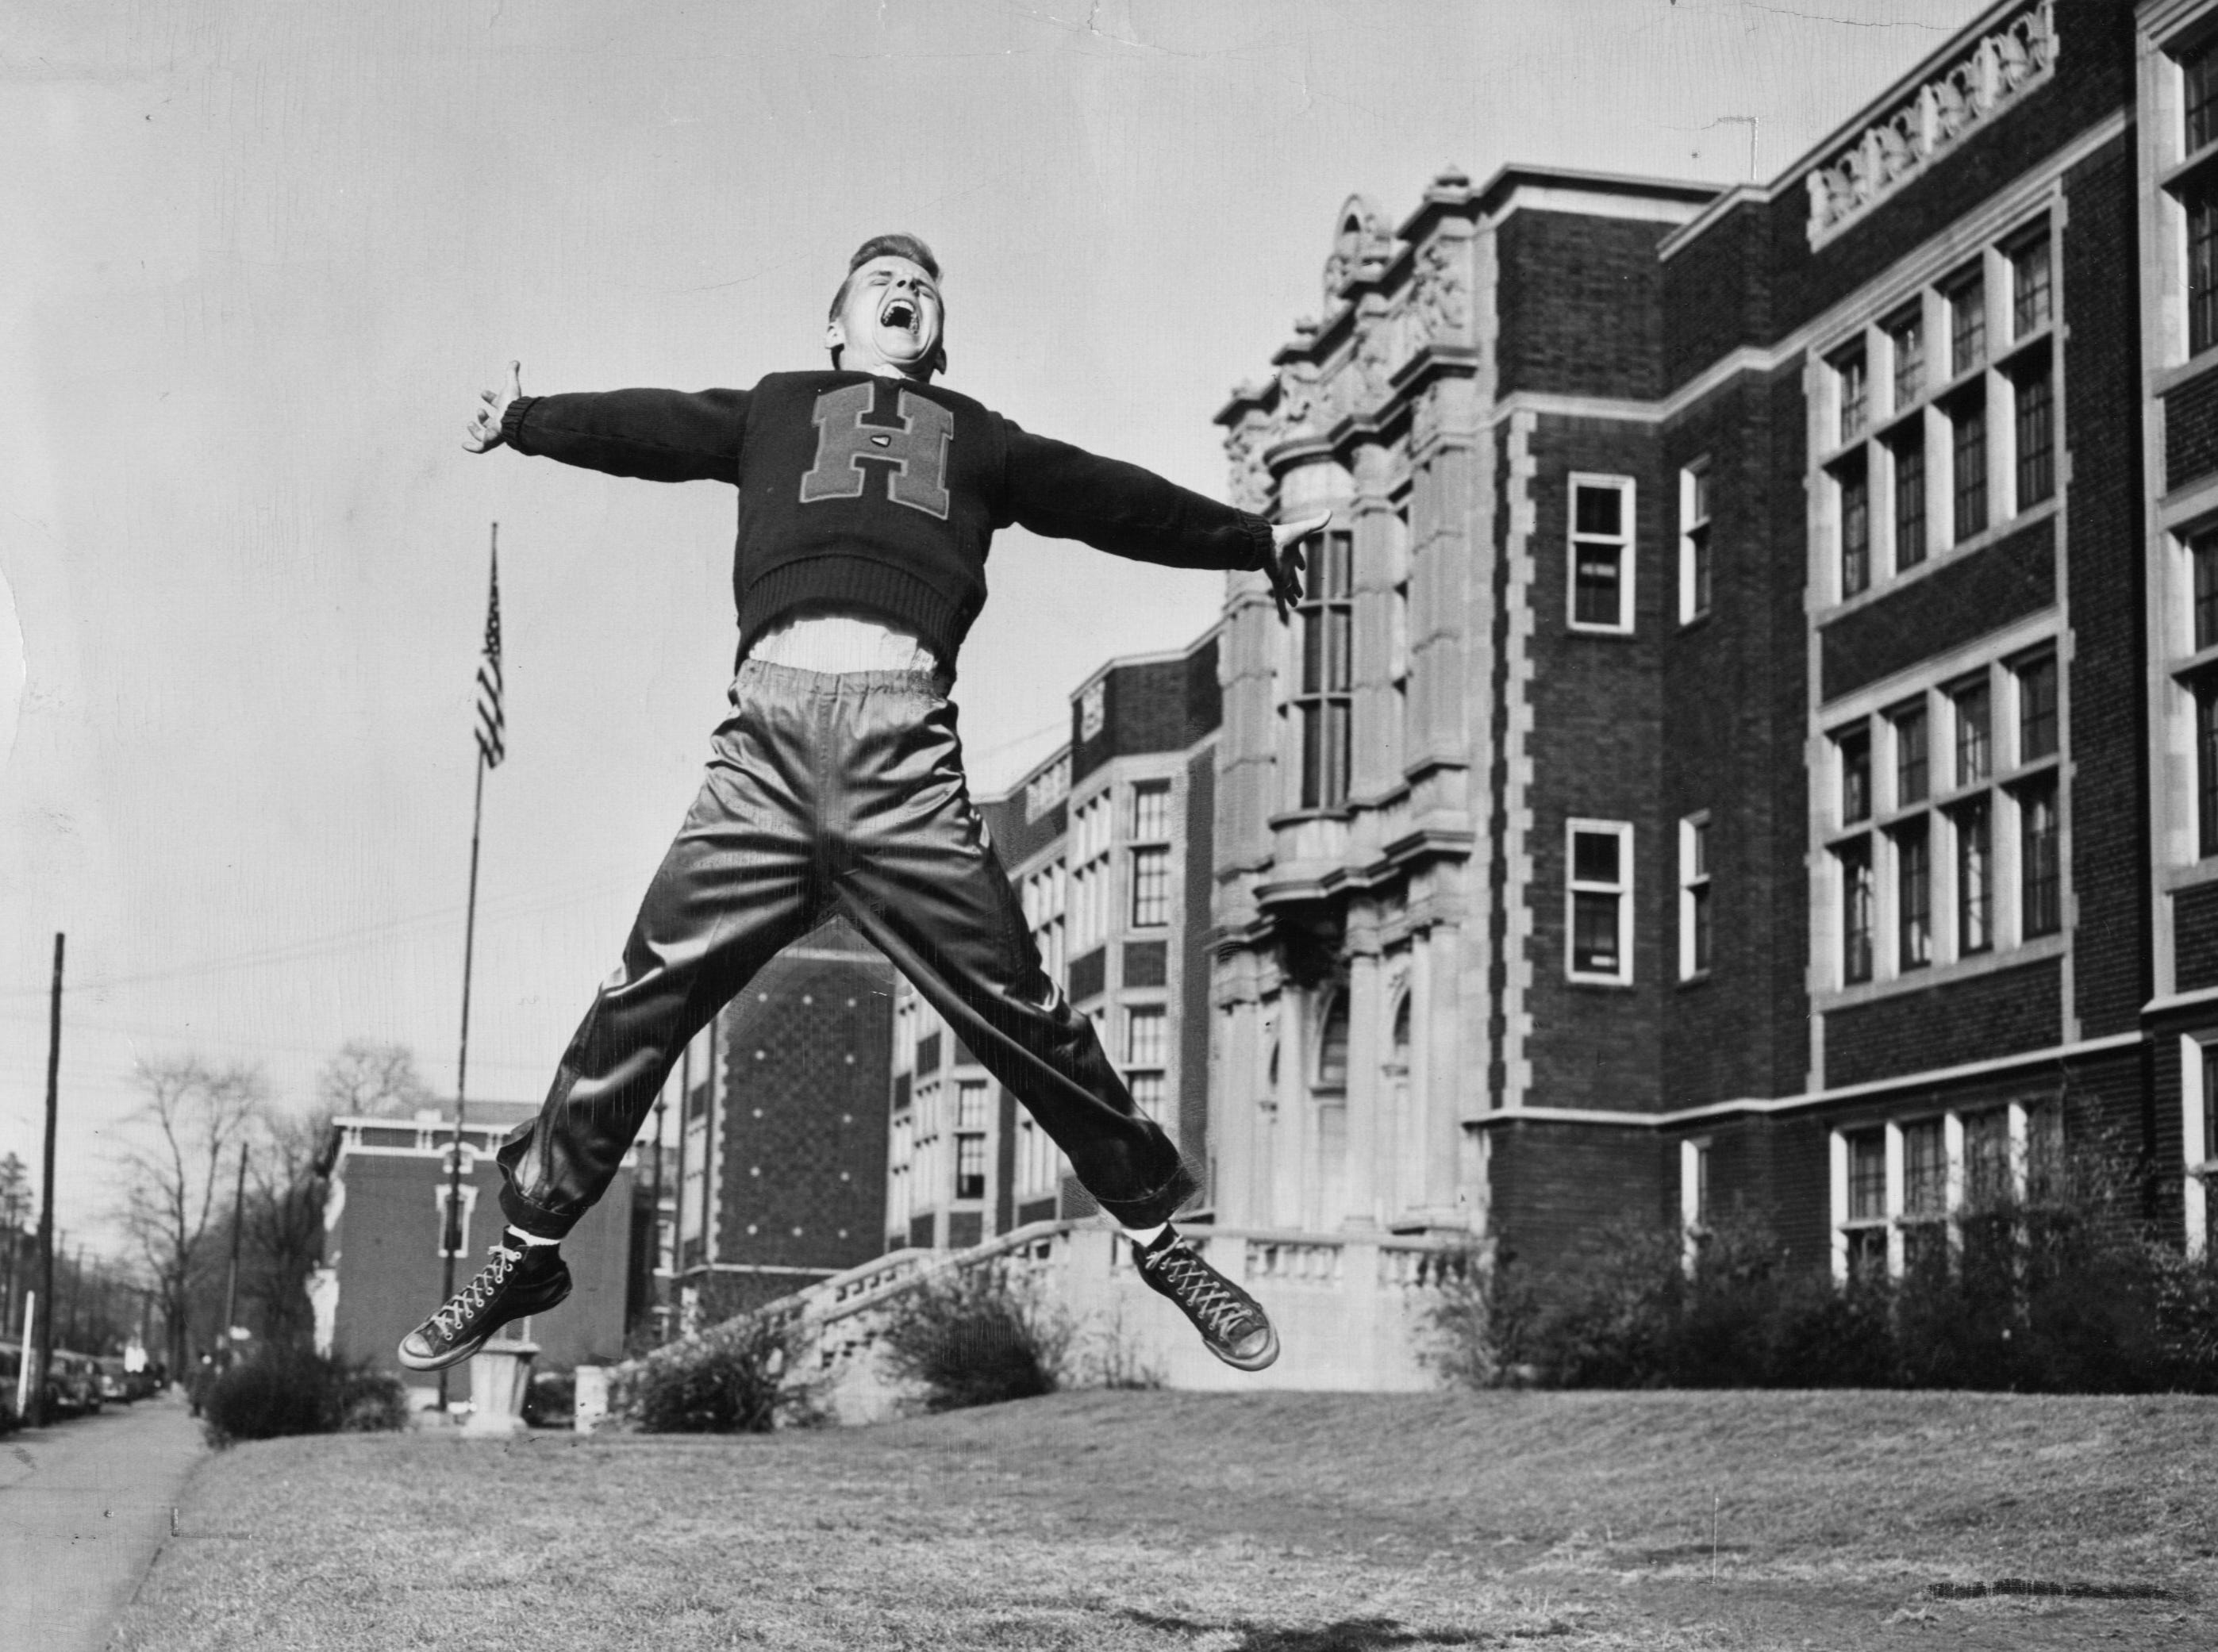 Male's Paul Stone posed this picture for us, showing only one of many ways a student can display his school spirit. Sep. 30, 1951